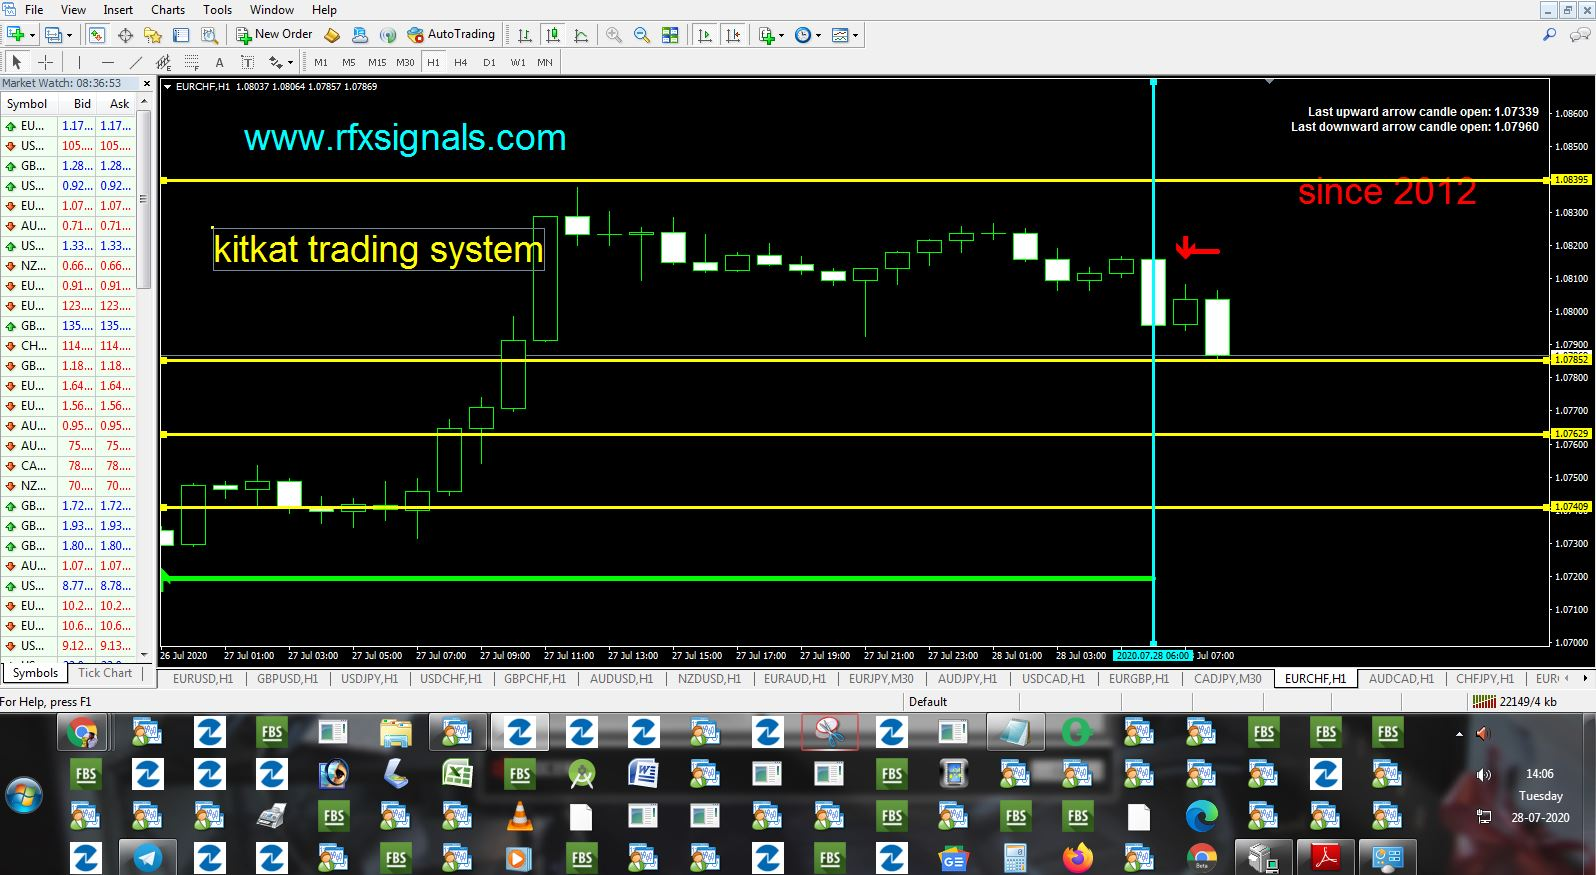 Daily Free Forex Signals For 27/07/2020